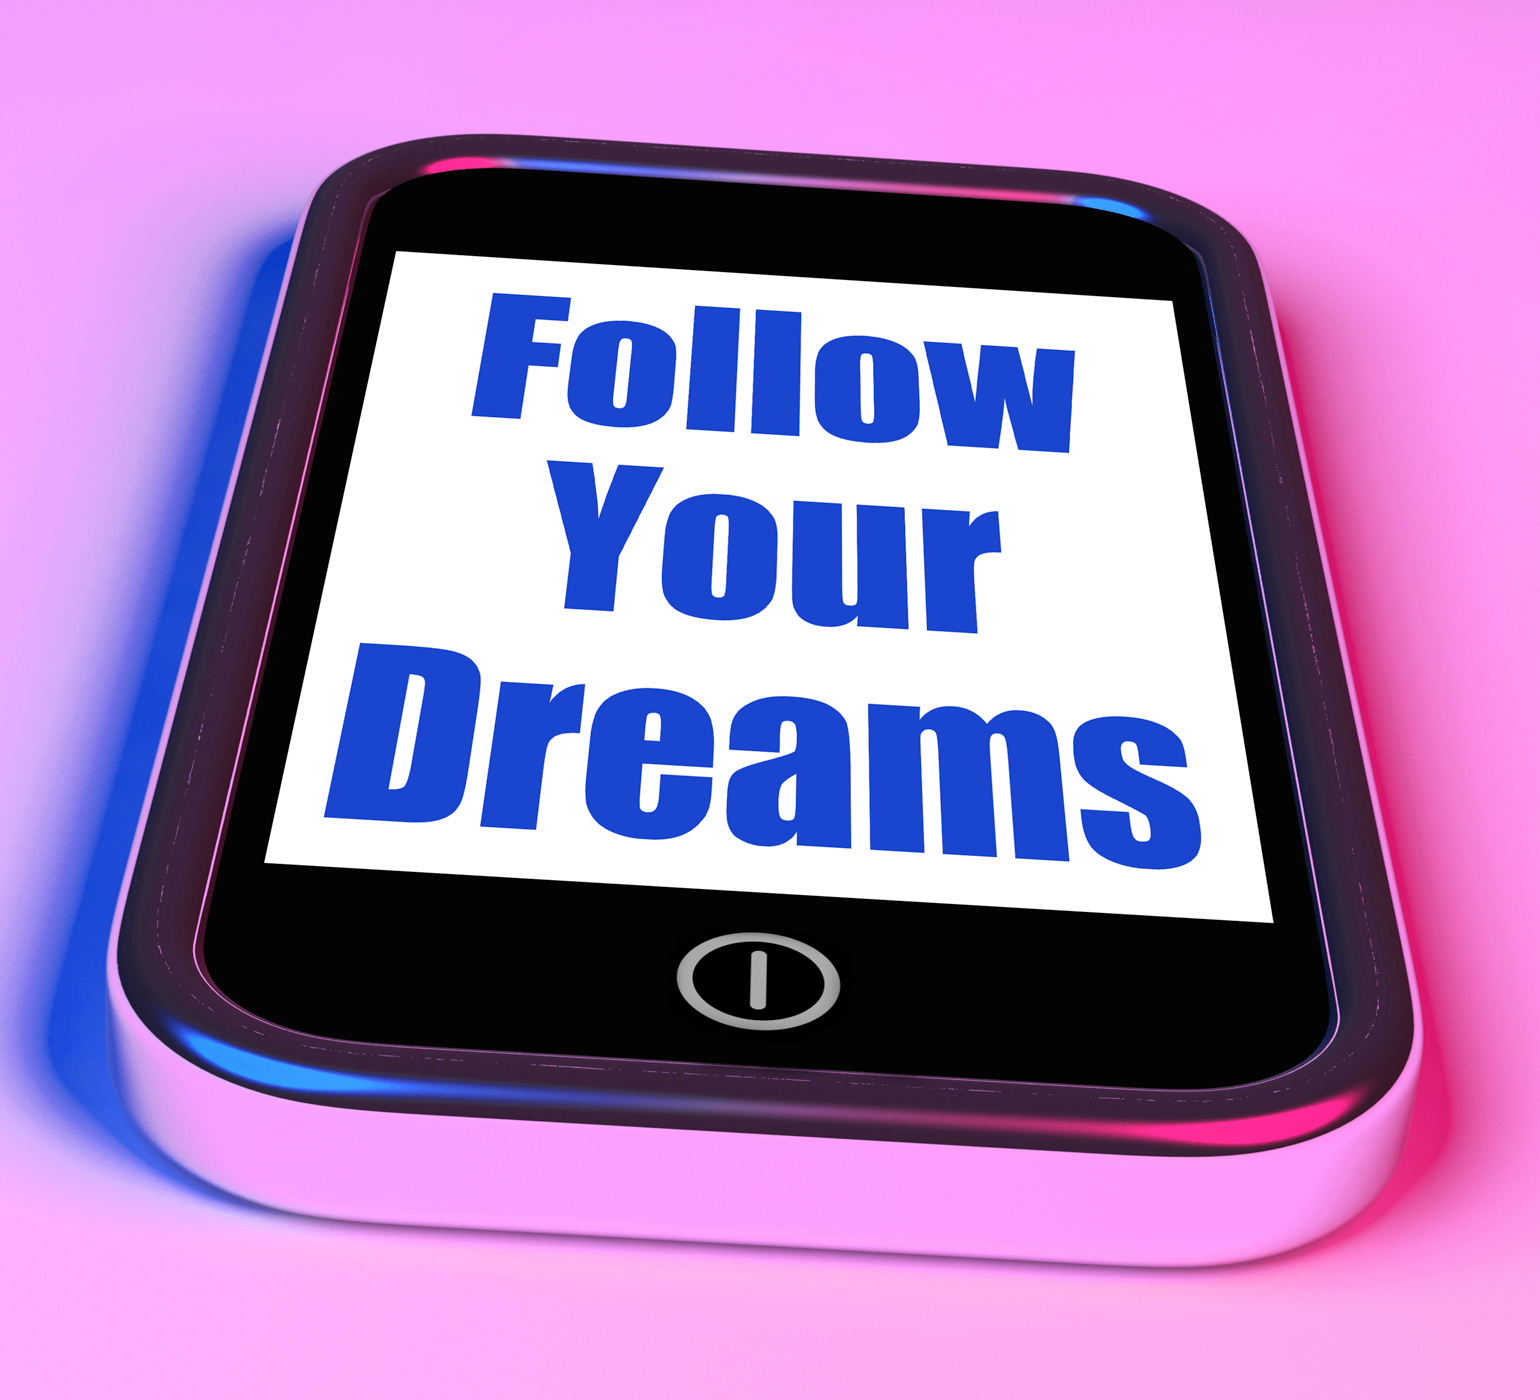 Follow Your Dreams On Phone Means Ambition Desire Future Dream, Hope, Smartphone, Phone, Optimistic, HQ Photo